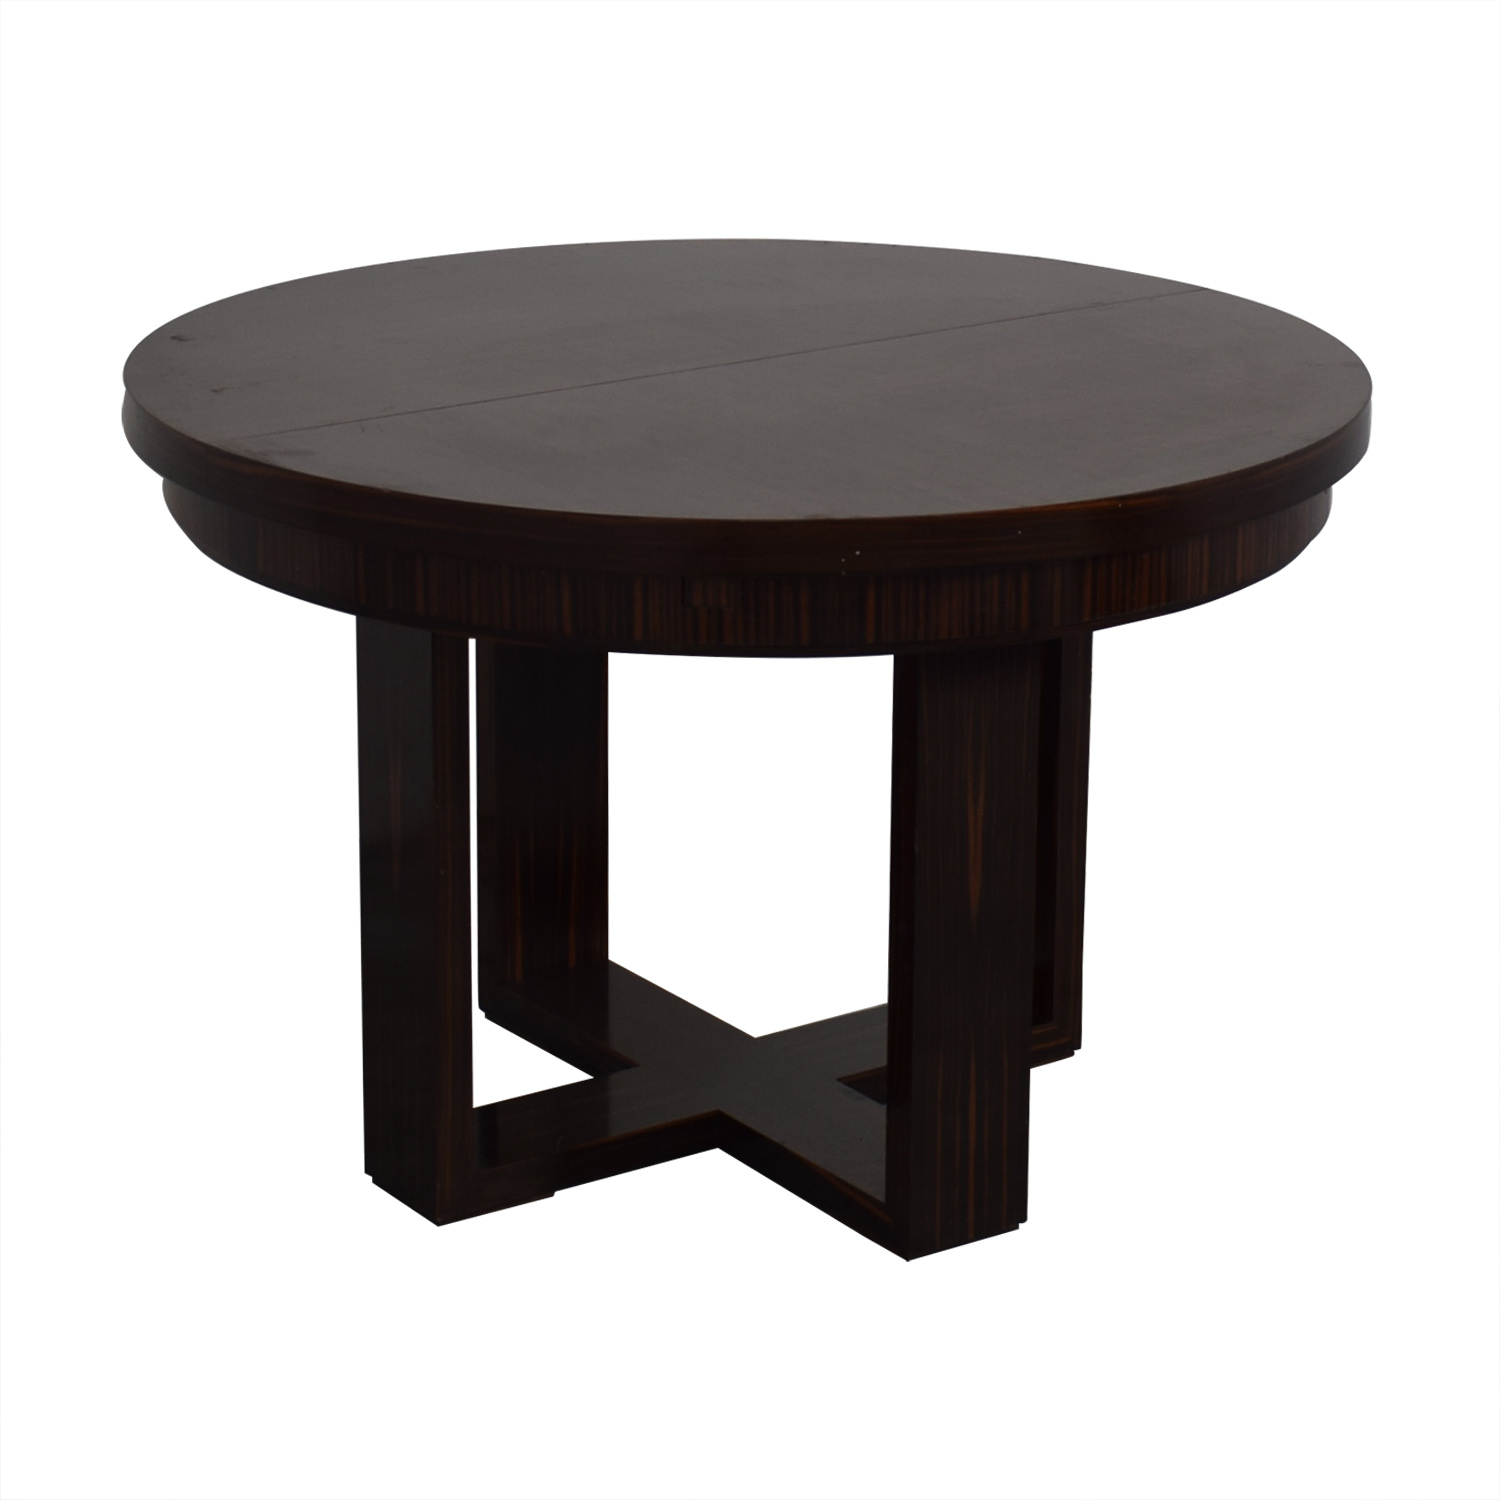 Annibale Colombo Annibale Colombo Extension Dining Table on sale